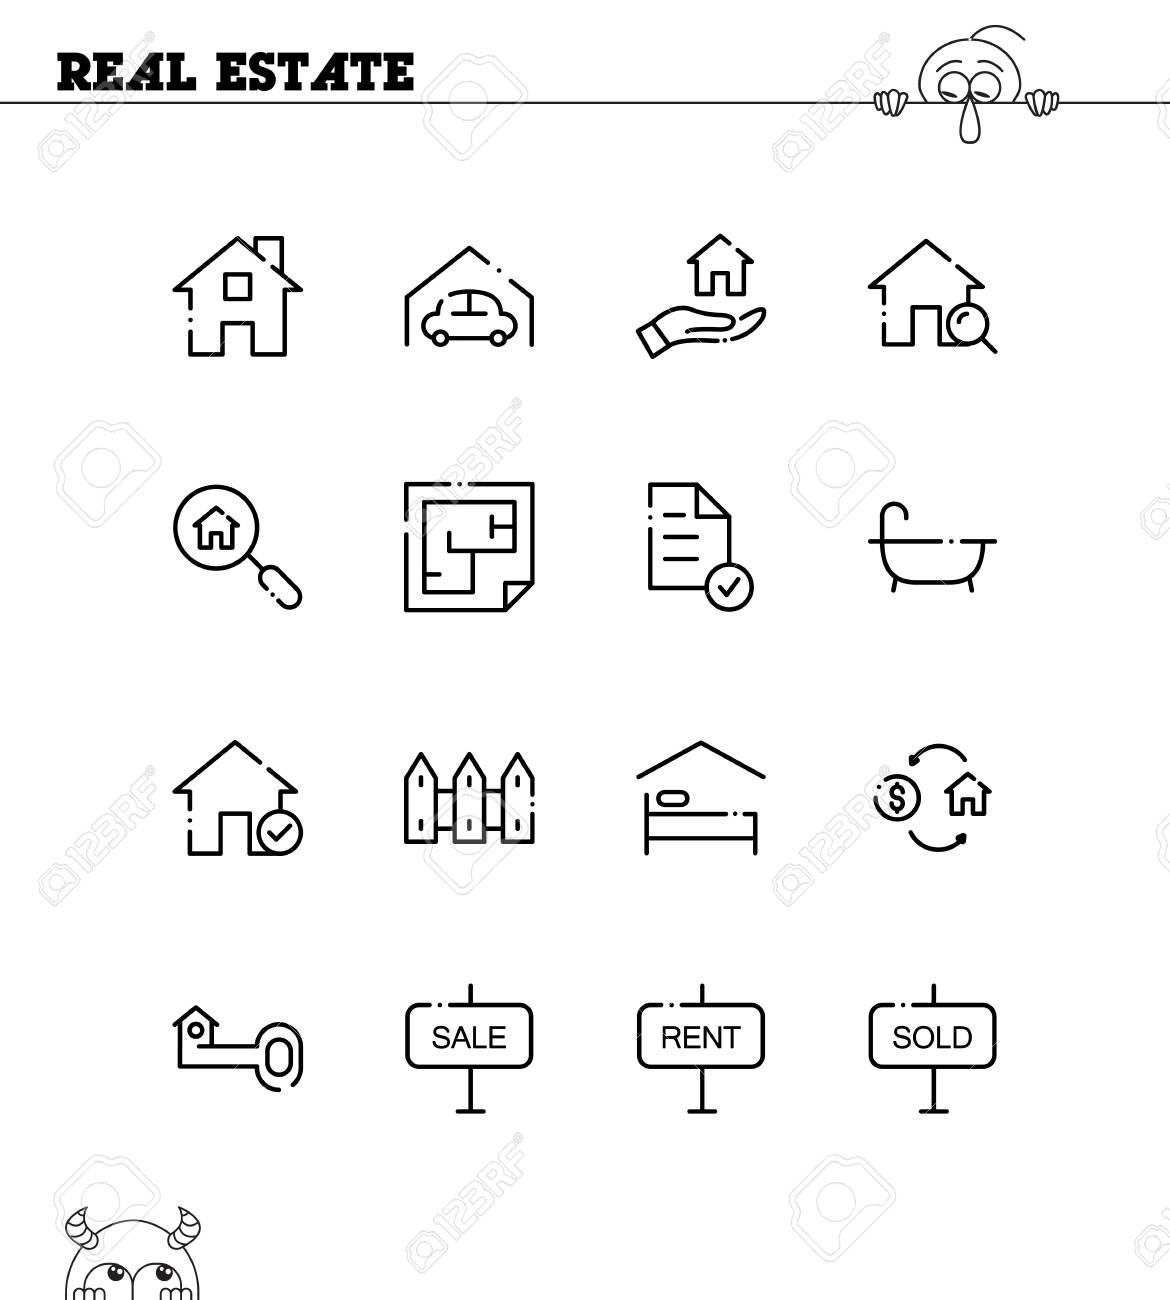 Real Estate Flat Icon Set Collection Of High Quality Outline